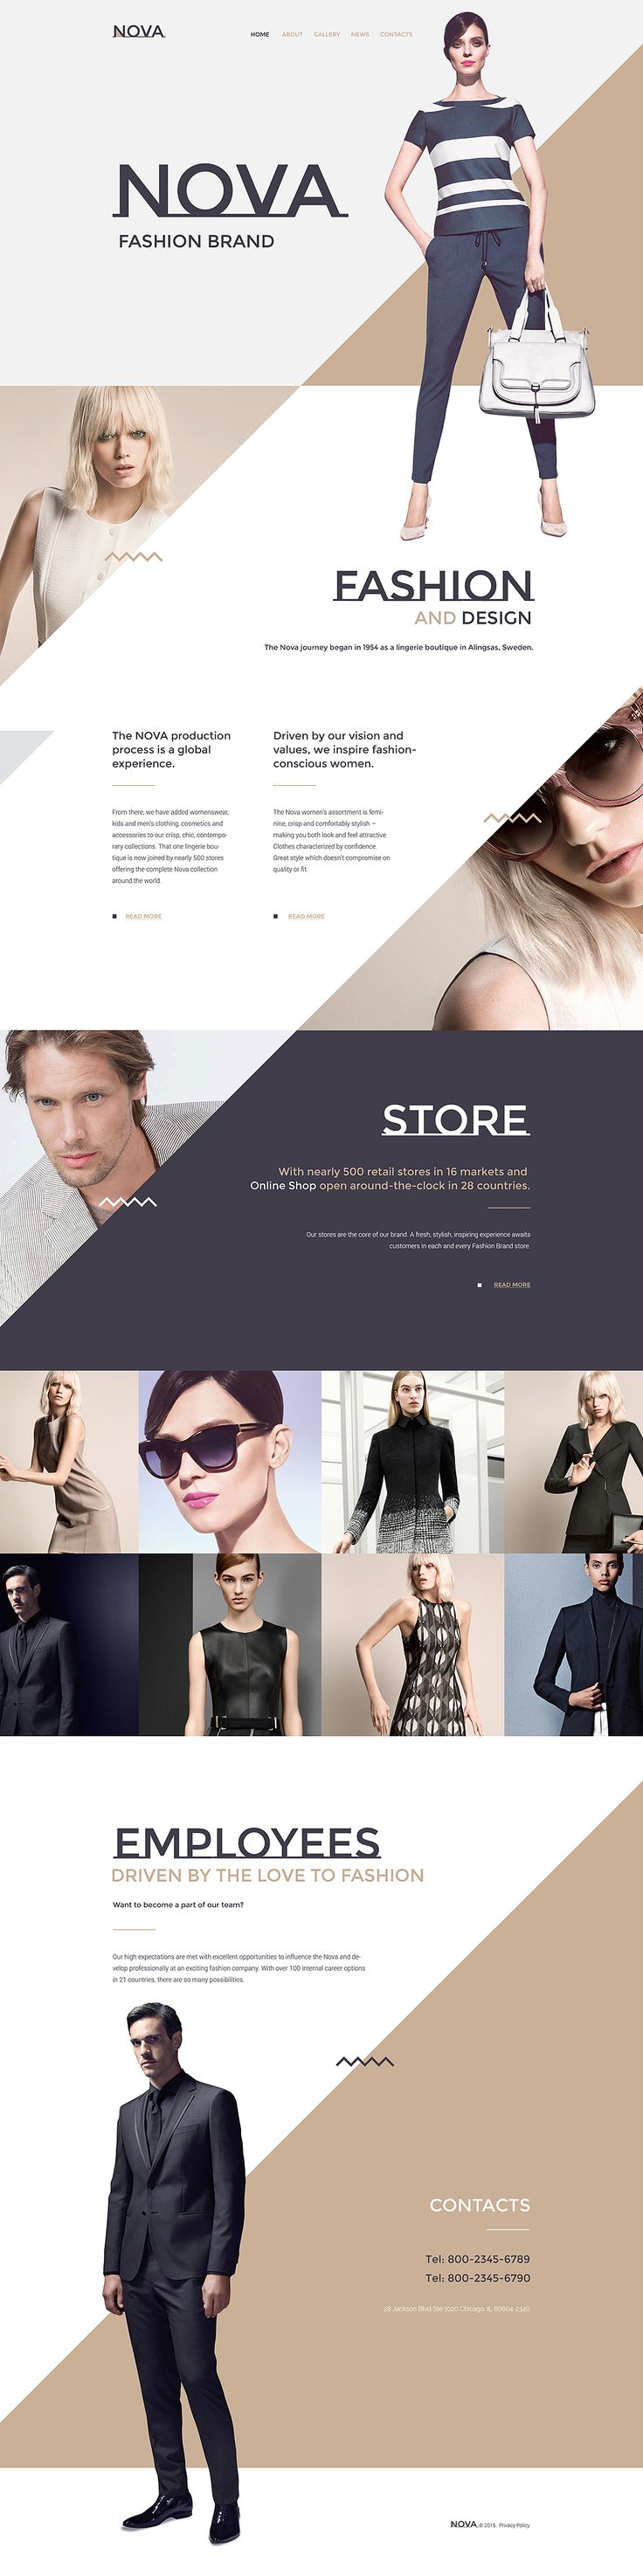 Ecommerce interface